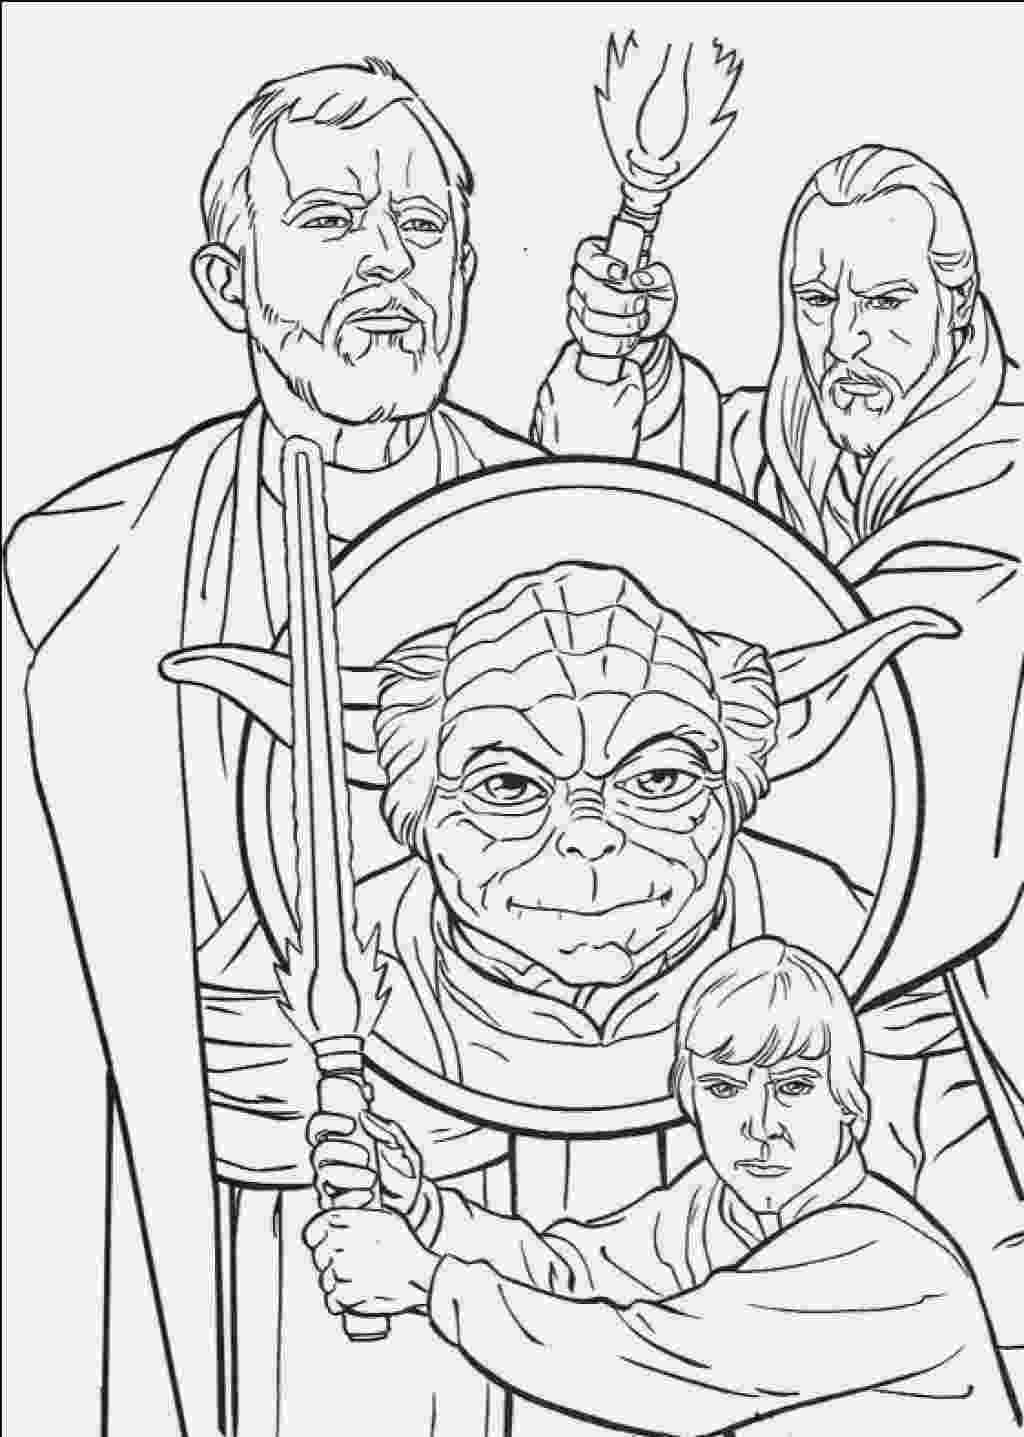 free printable star wars coloring pages star wars clone wars coloring pages pages printable star coloring free wars